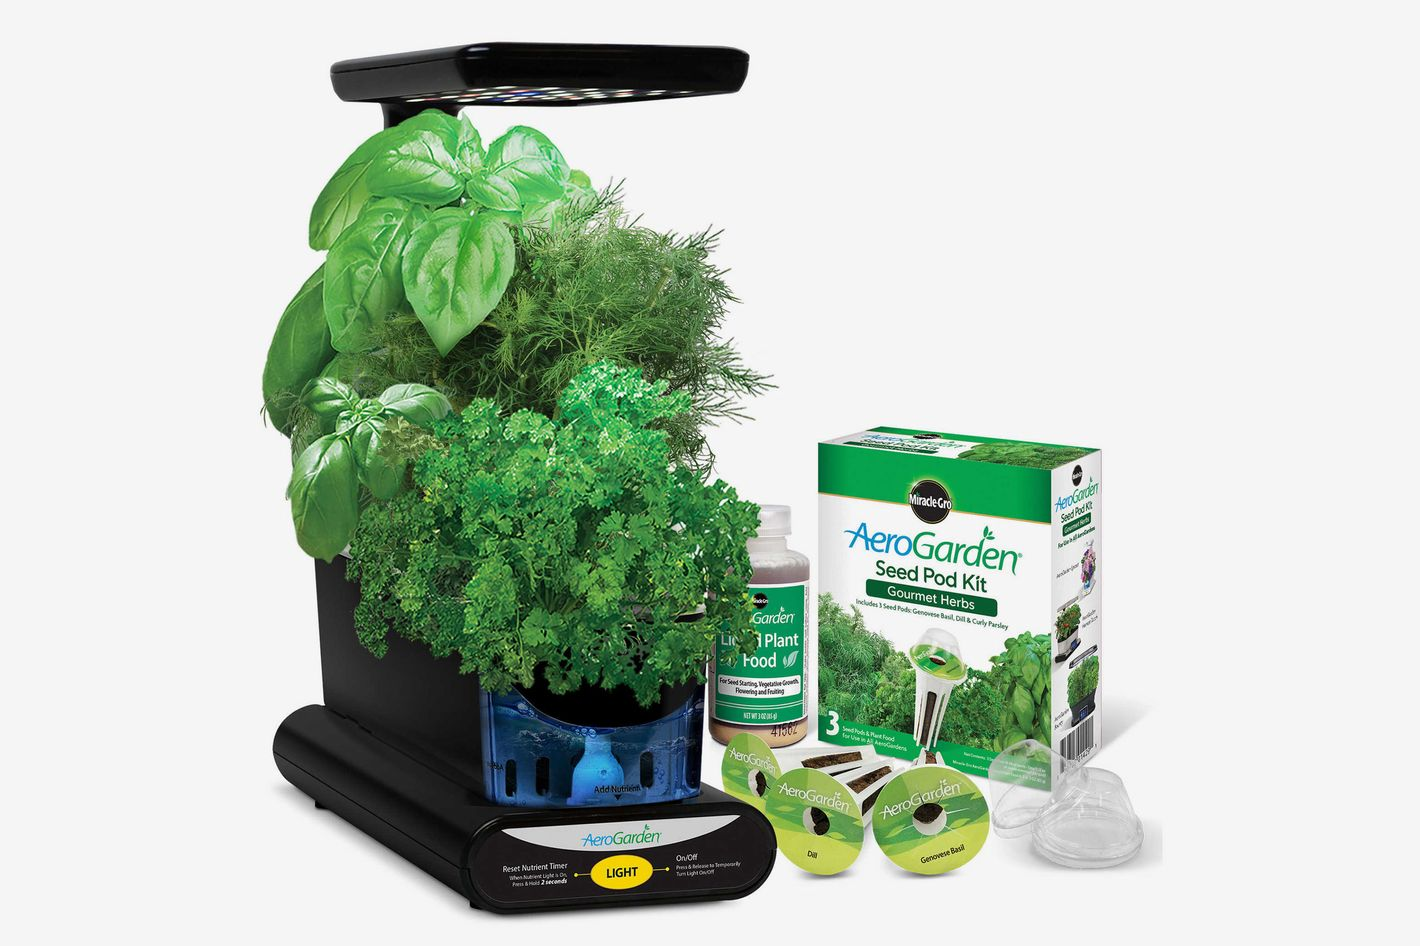 AeroGarden Sprout LED With Gourmet Herb Seed Pod Kit